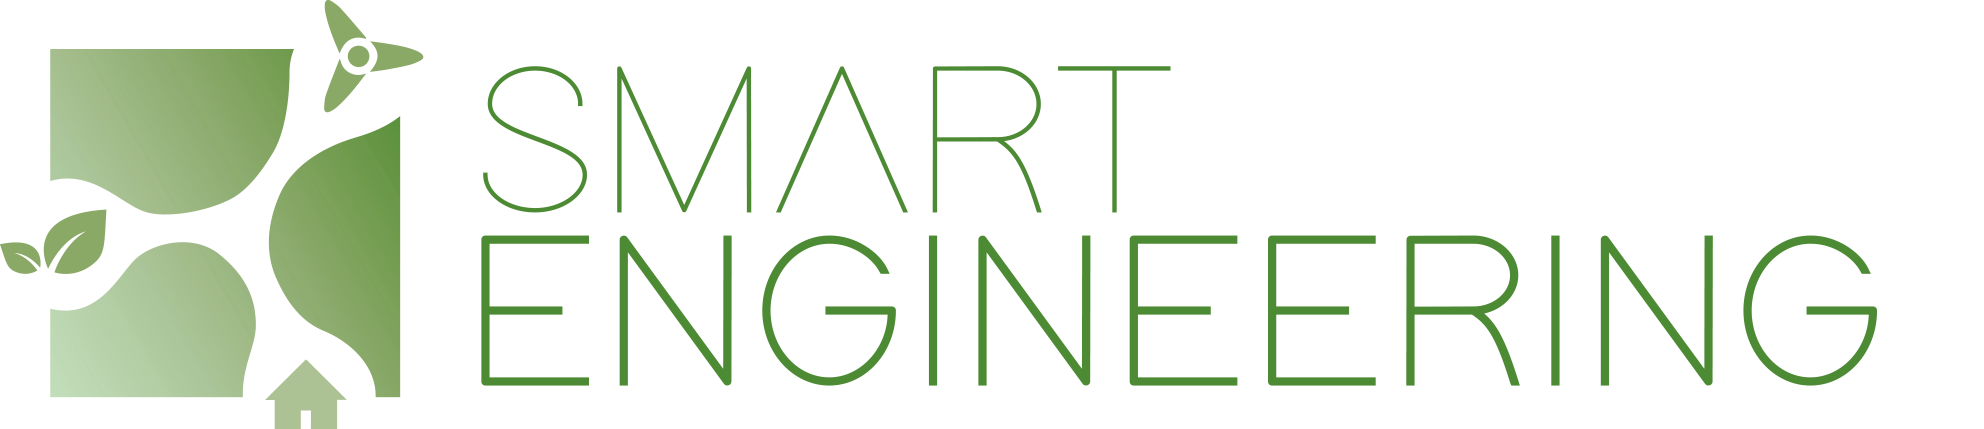 Smart Engineering GmbH